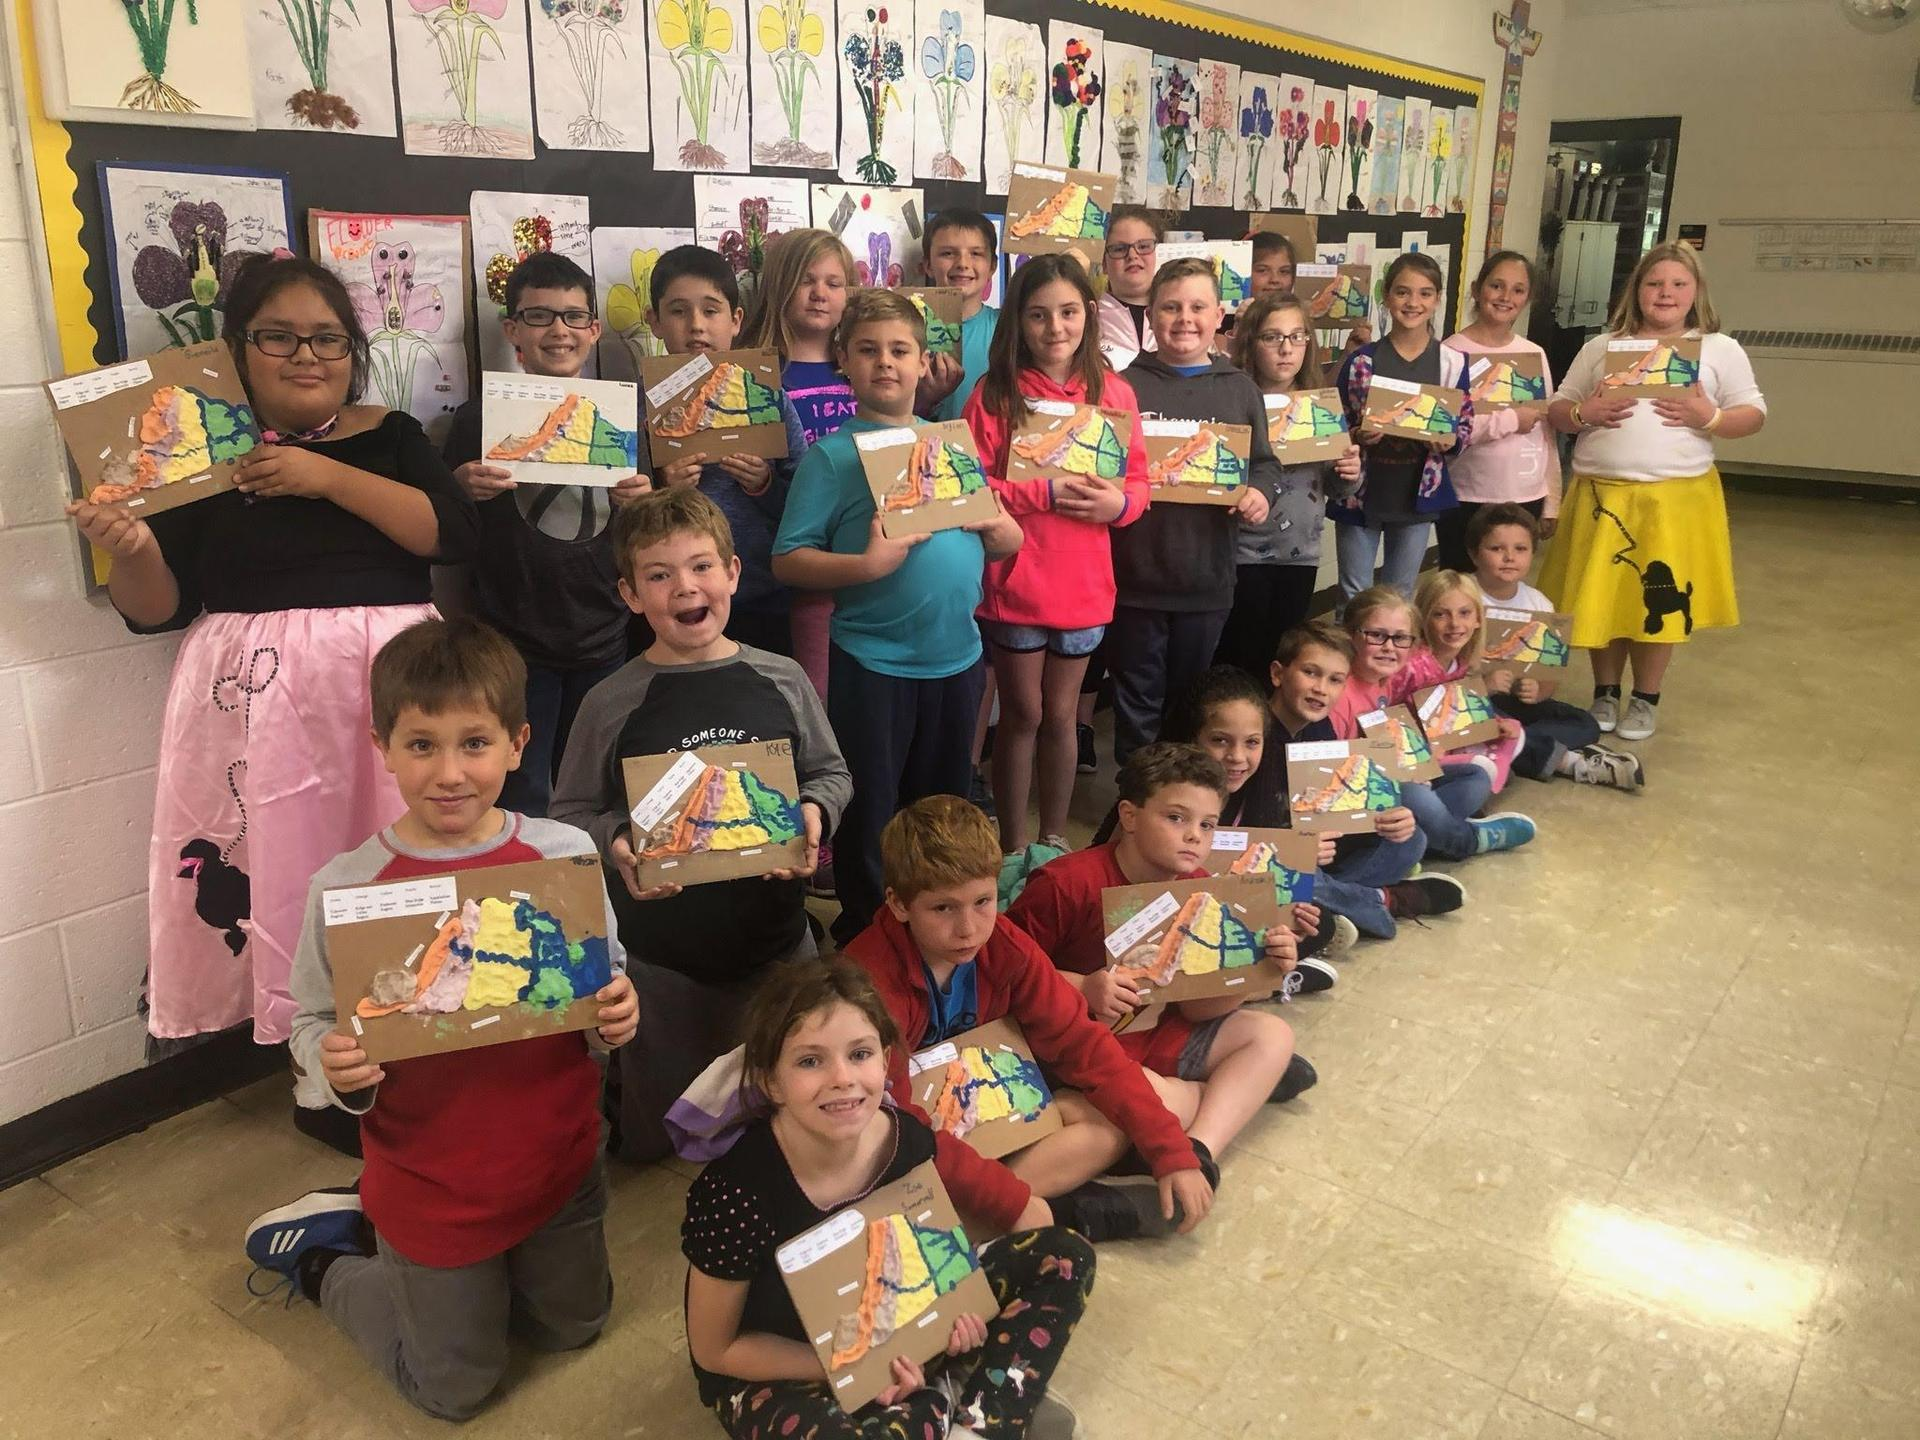 4th grade students display their salt relief maps of the state of Virginia